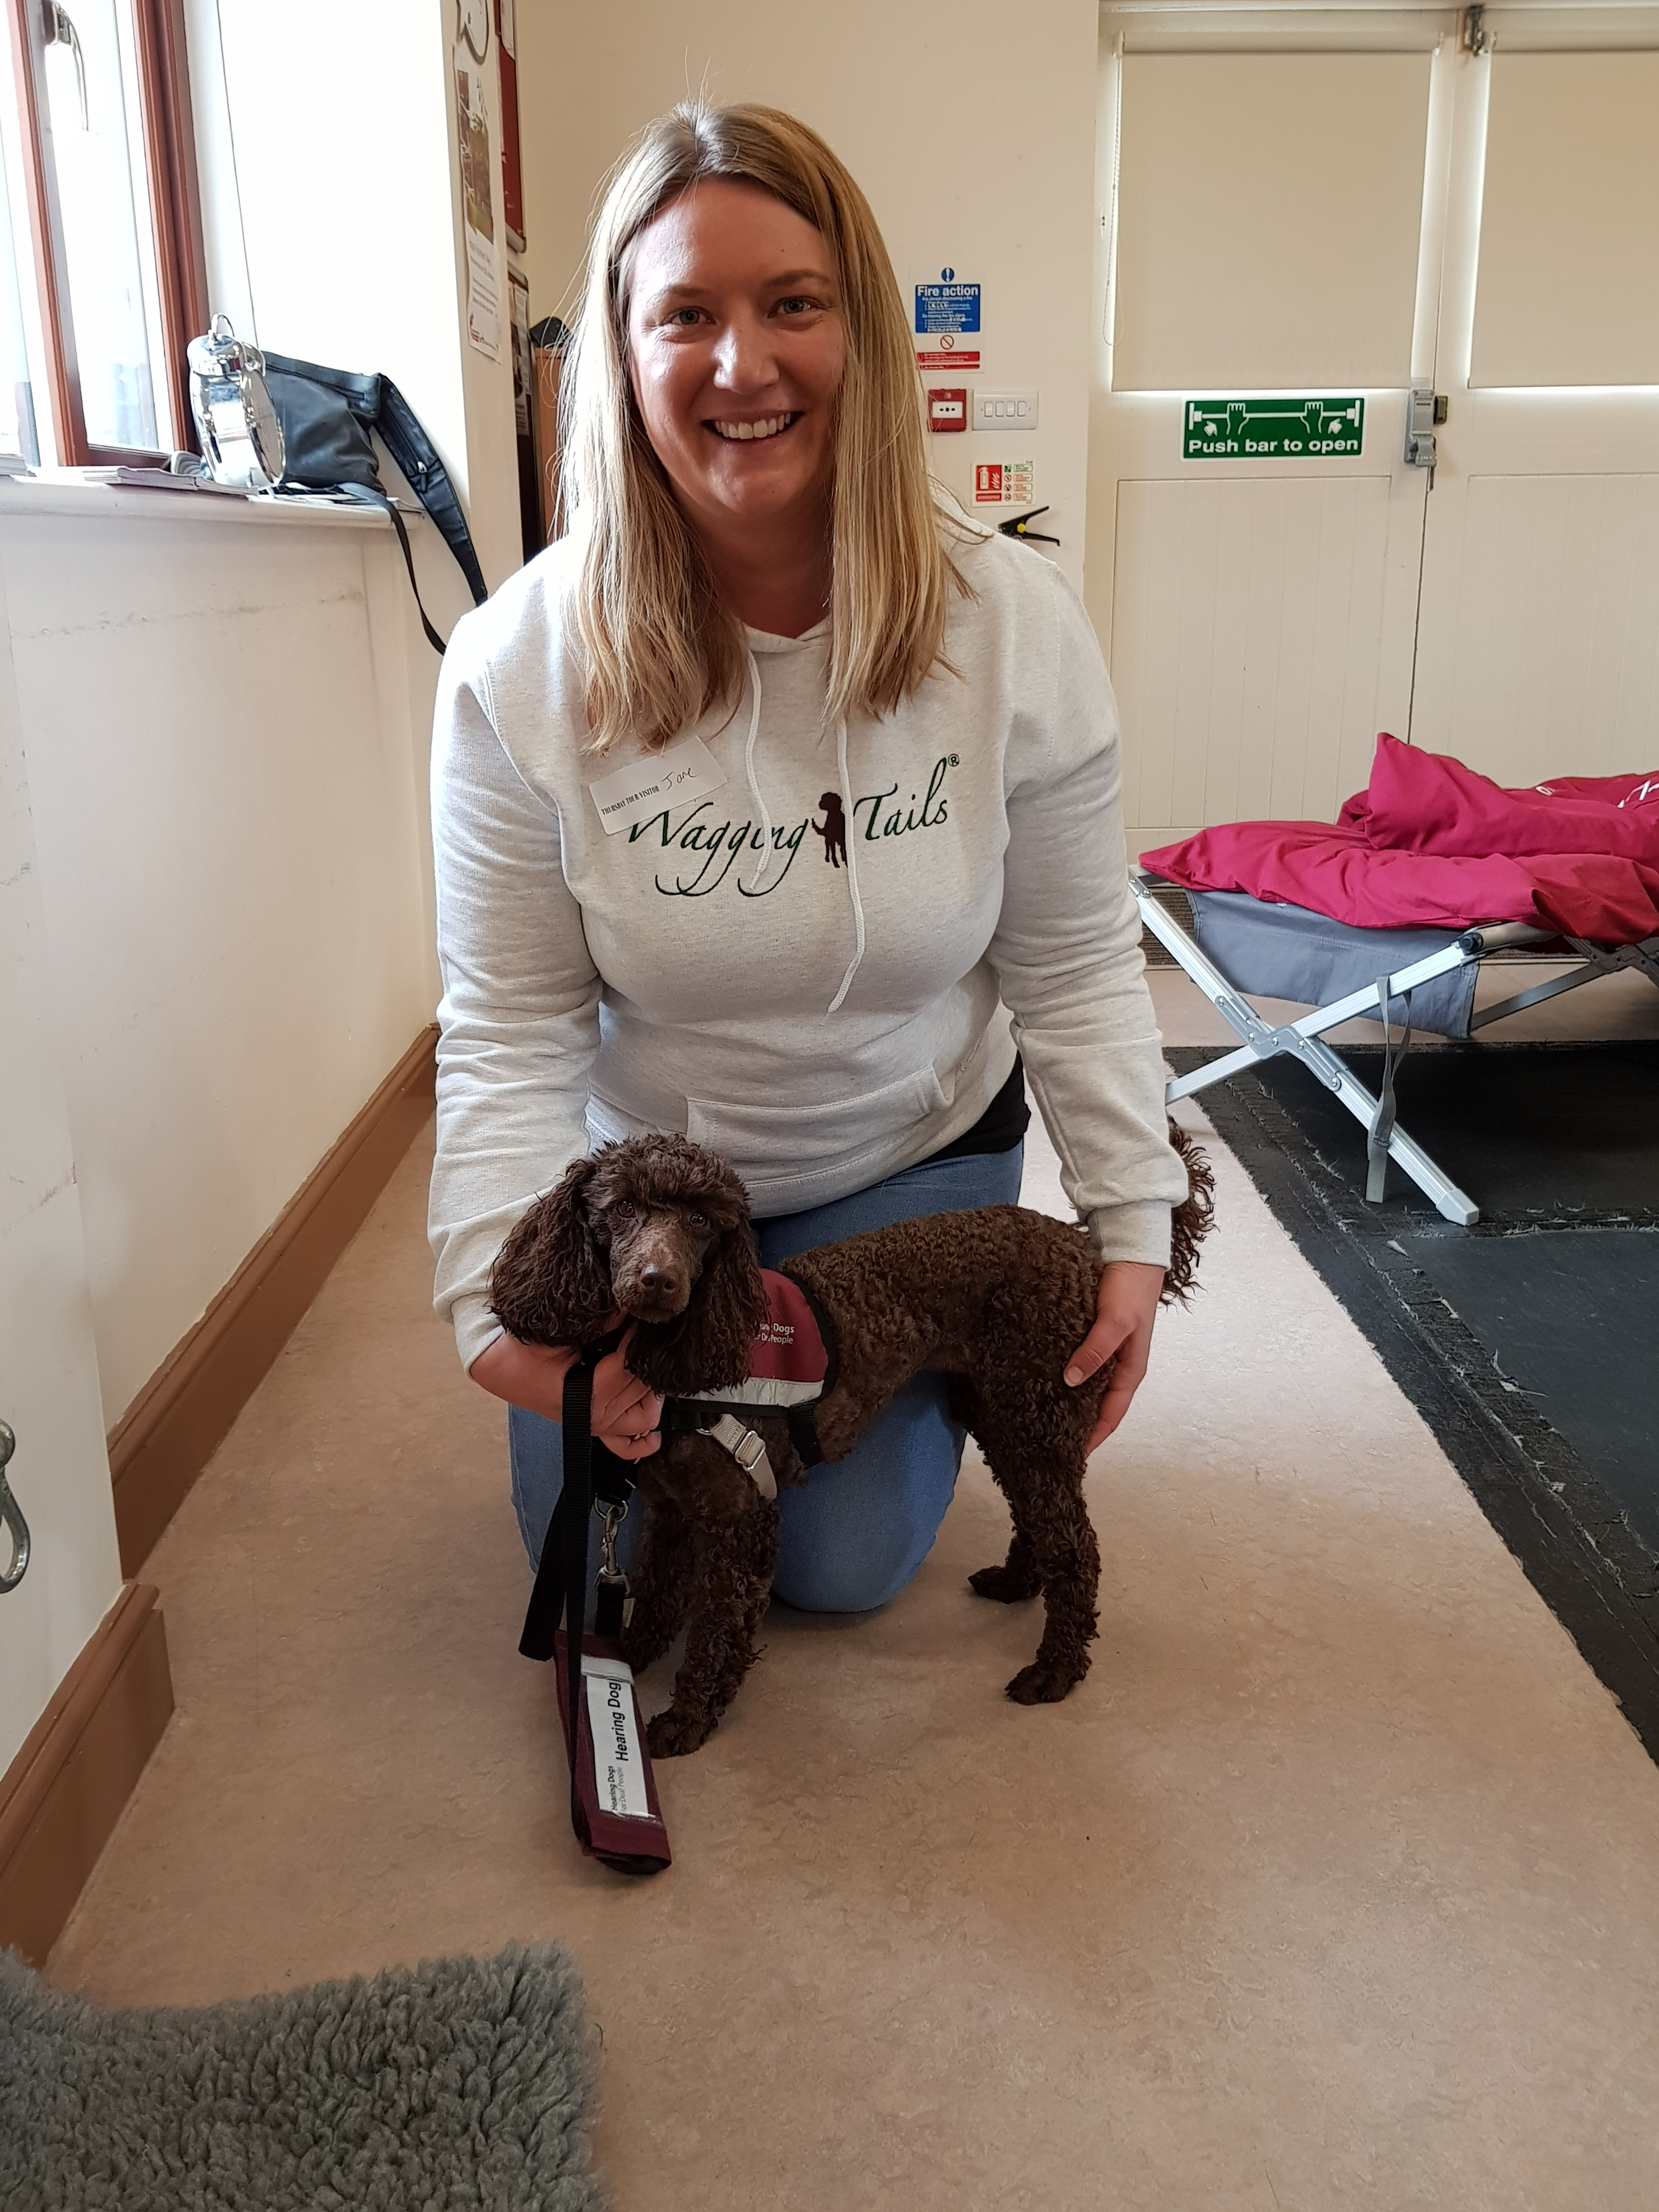 Jane Bamford from Wagging Tails York during her visit to Hearing Dogs for Deaf People